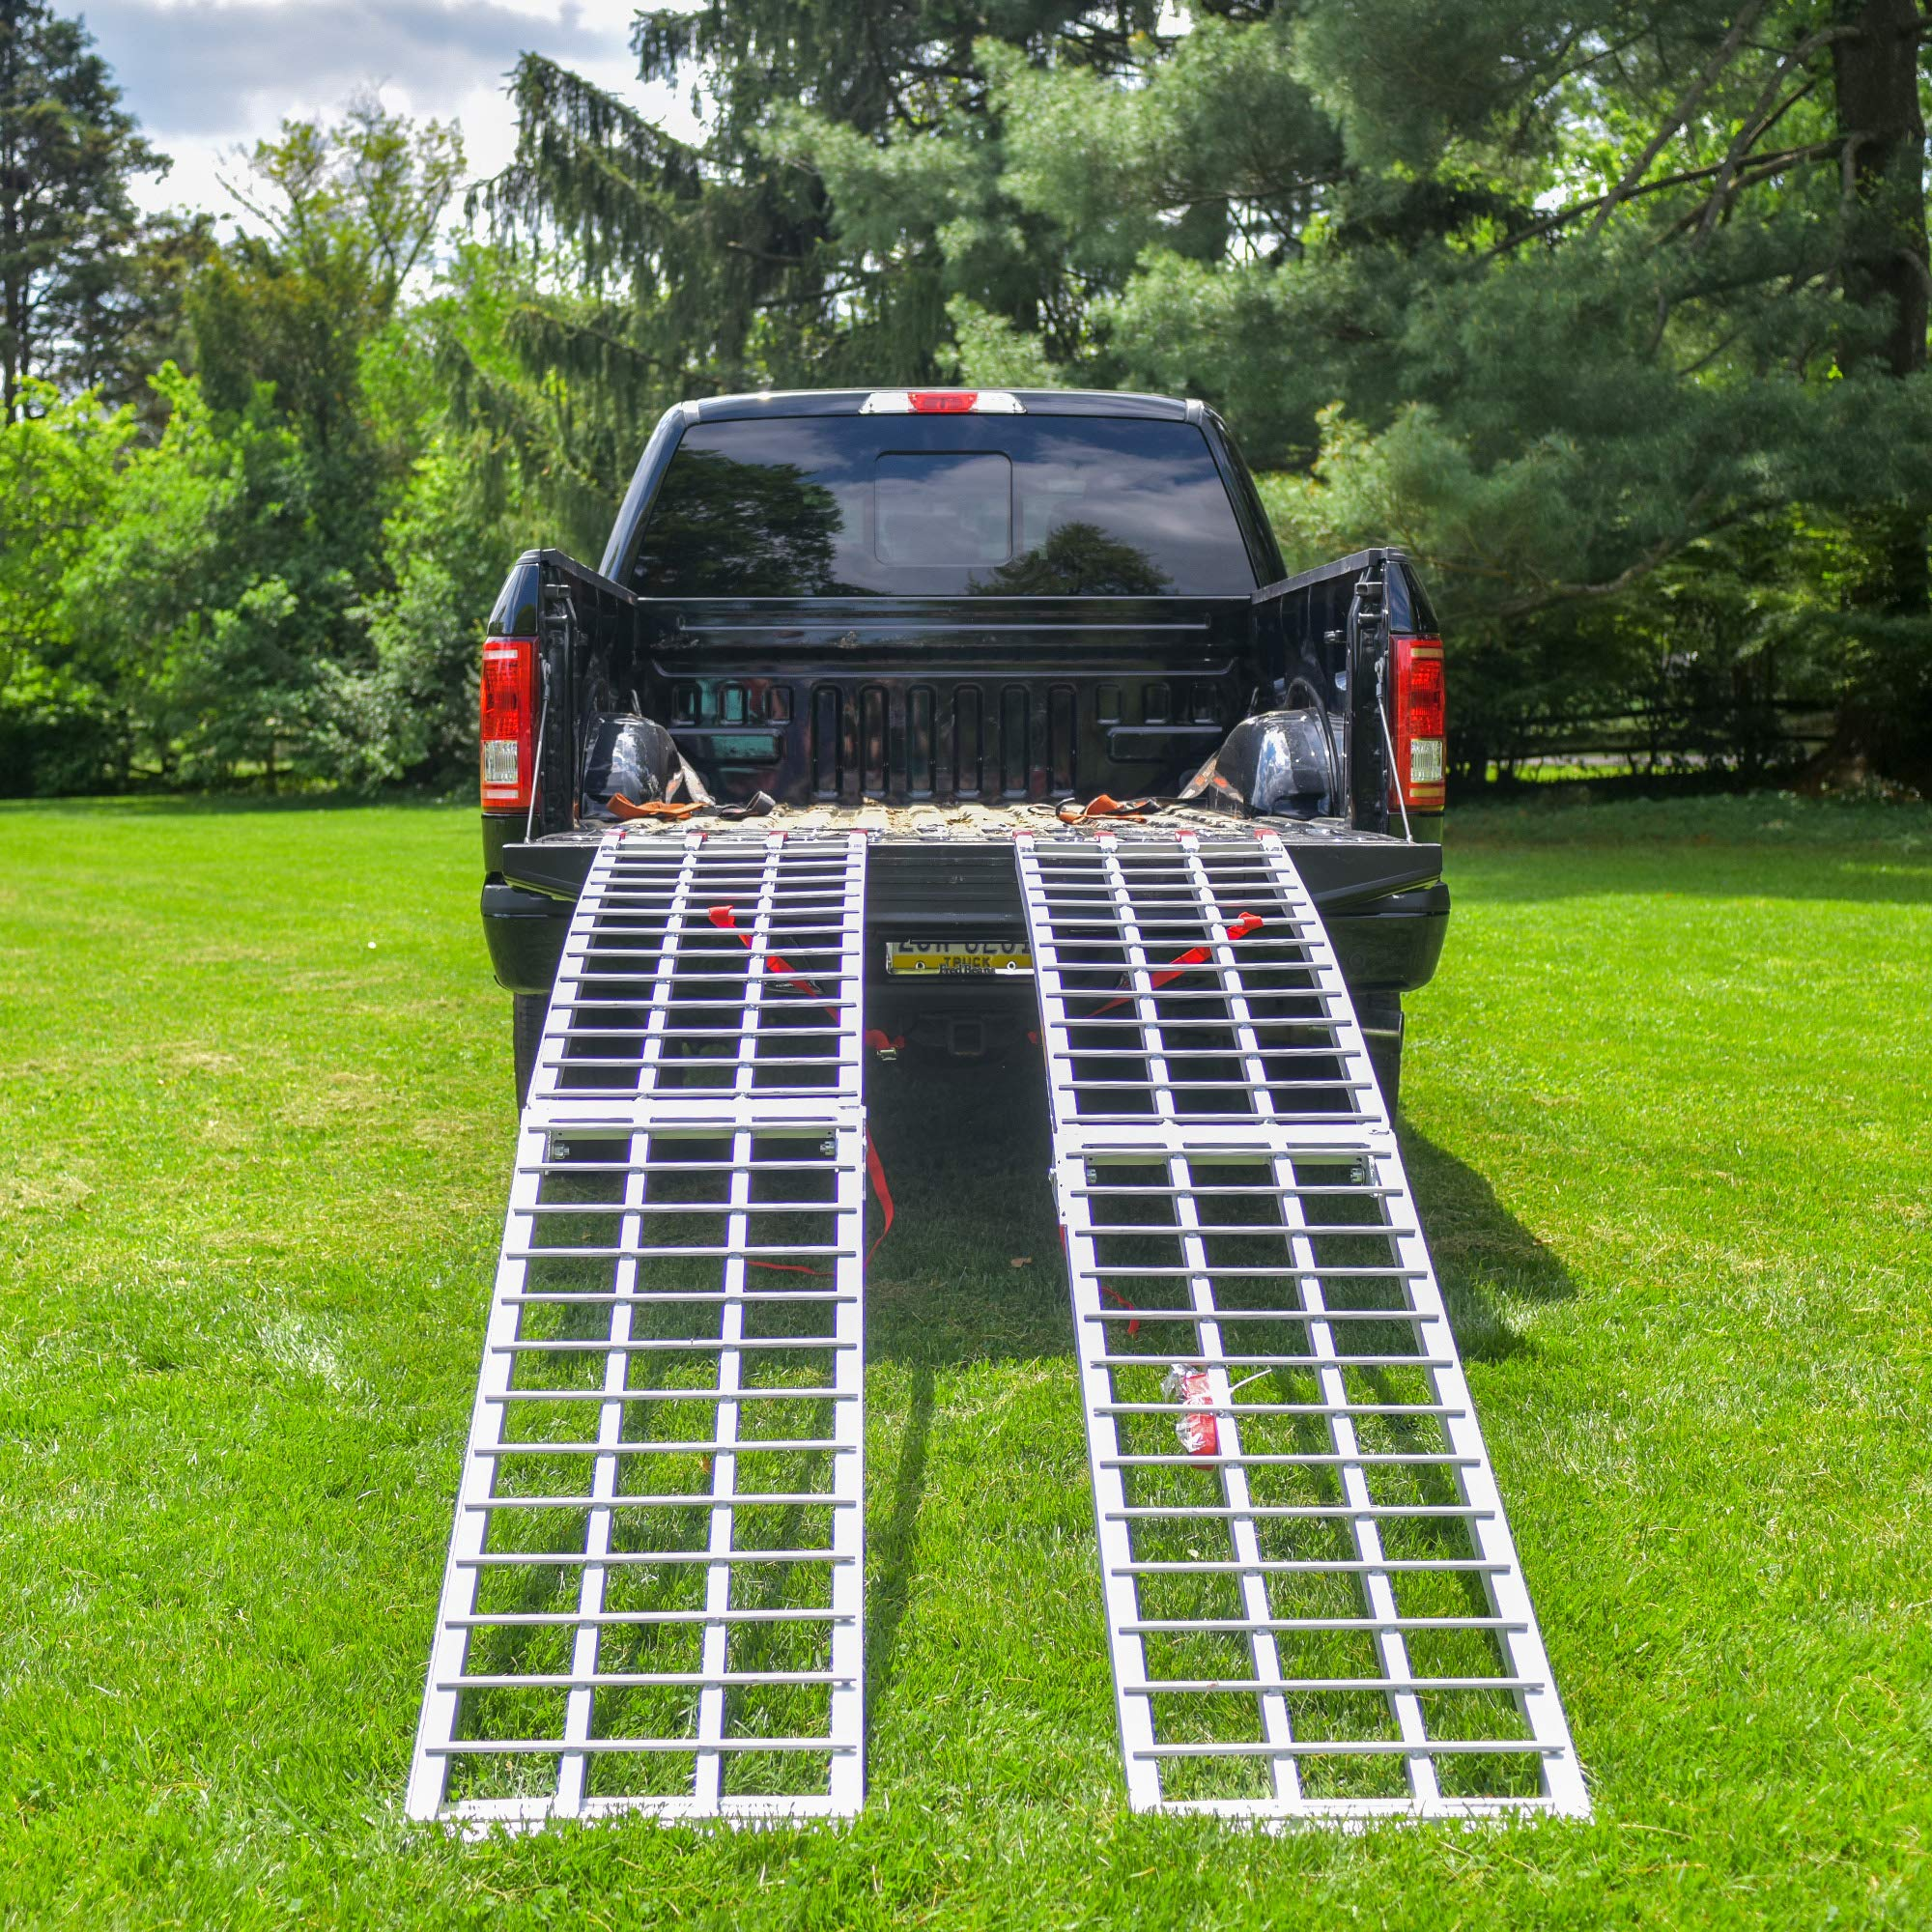 EmpireCovers Aluminum Folding ATV/UTV Ramp - 7.5' Long, 2,000 lb Weight Capacity (Sold as Pair) by EmpireCovers (Image #3)